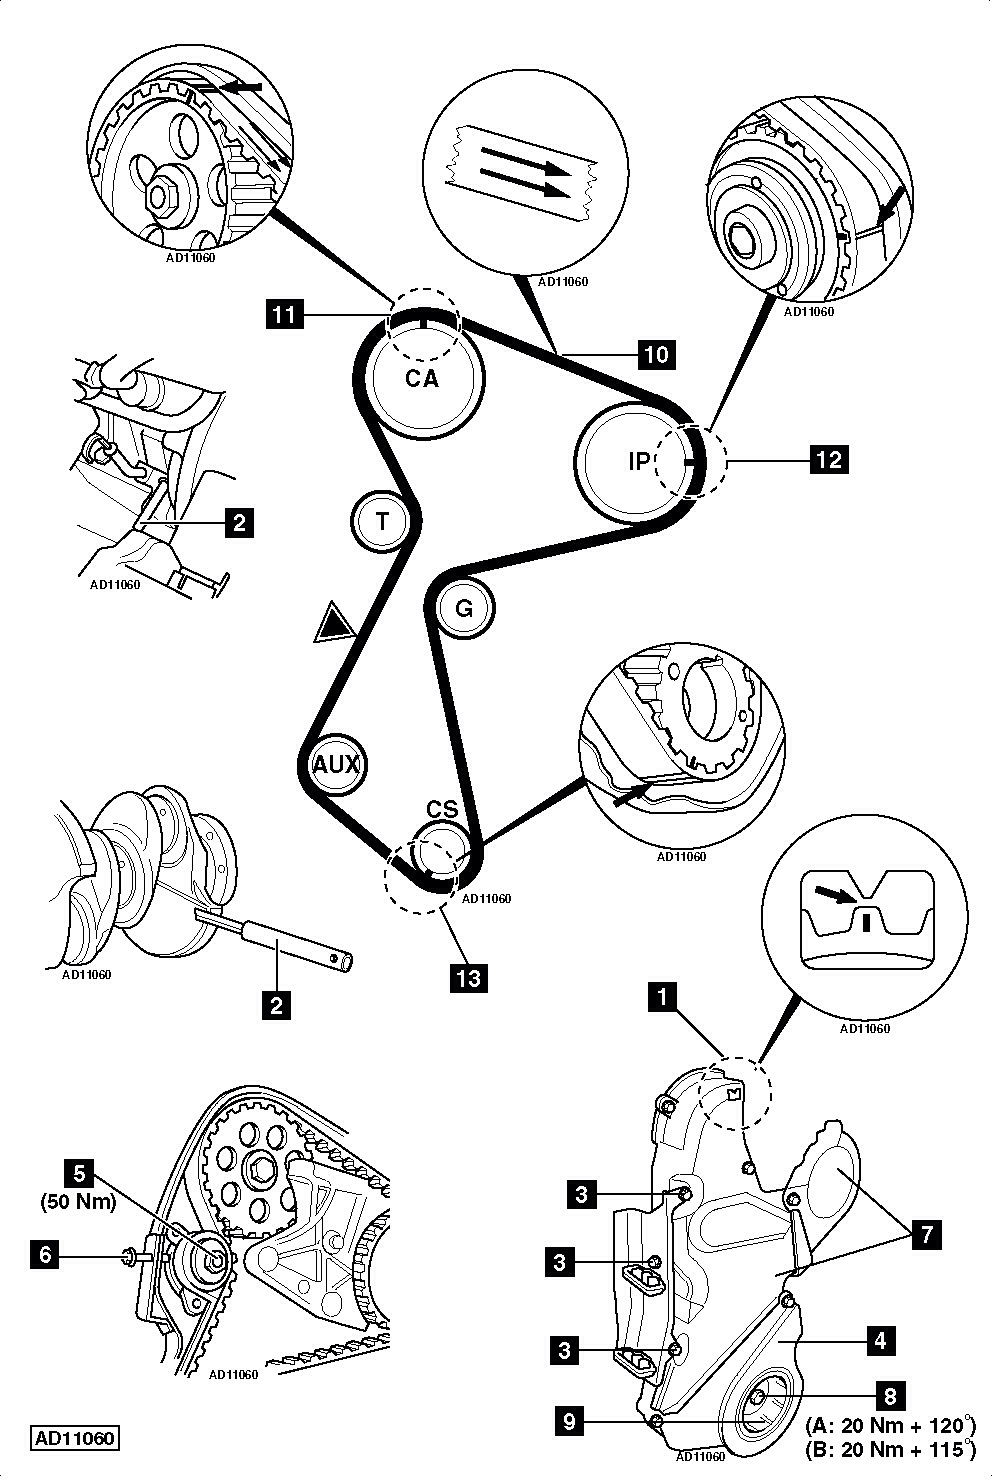 Im Replacing A Timing Belt On Renault Kangoo 19 D D55 And When I Central Locking Wiring Diagram 95fa7665 Cc11 4838 B615 30e49ae8465d Image